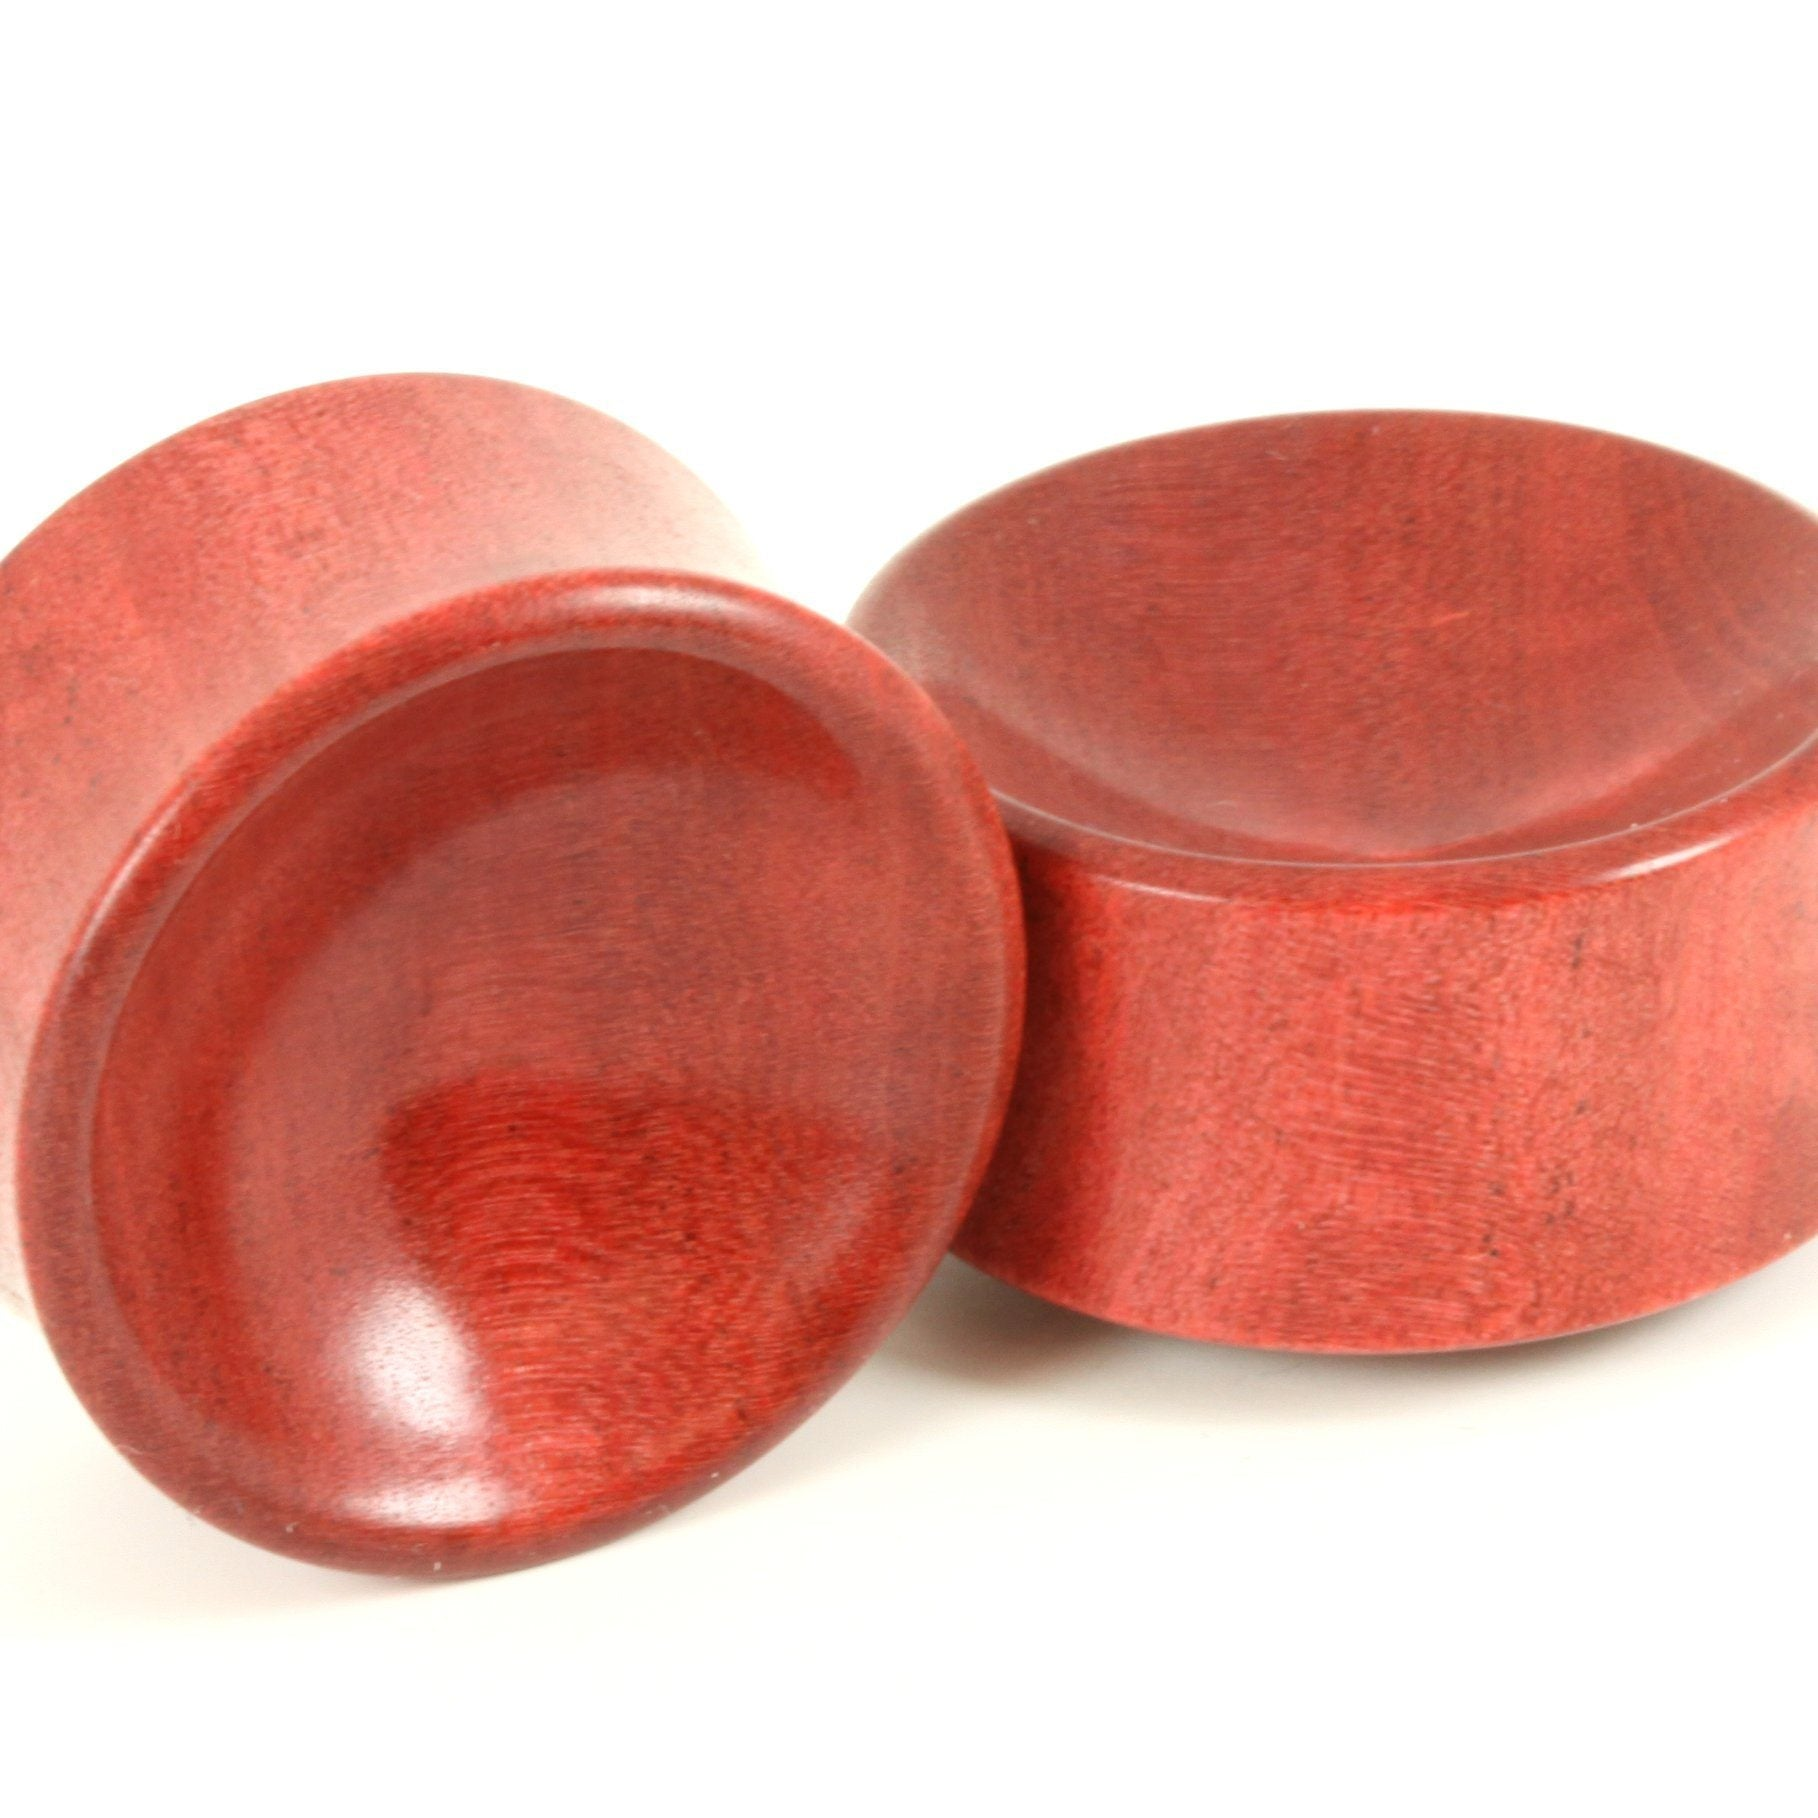 Pink Ivory Bowl Plugs, jewellery, body jewellery. - Southshore Adornments